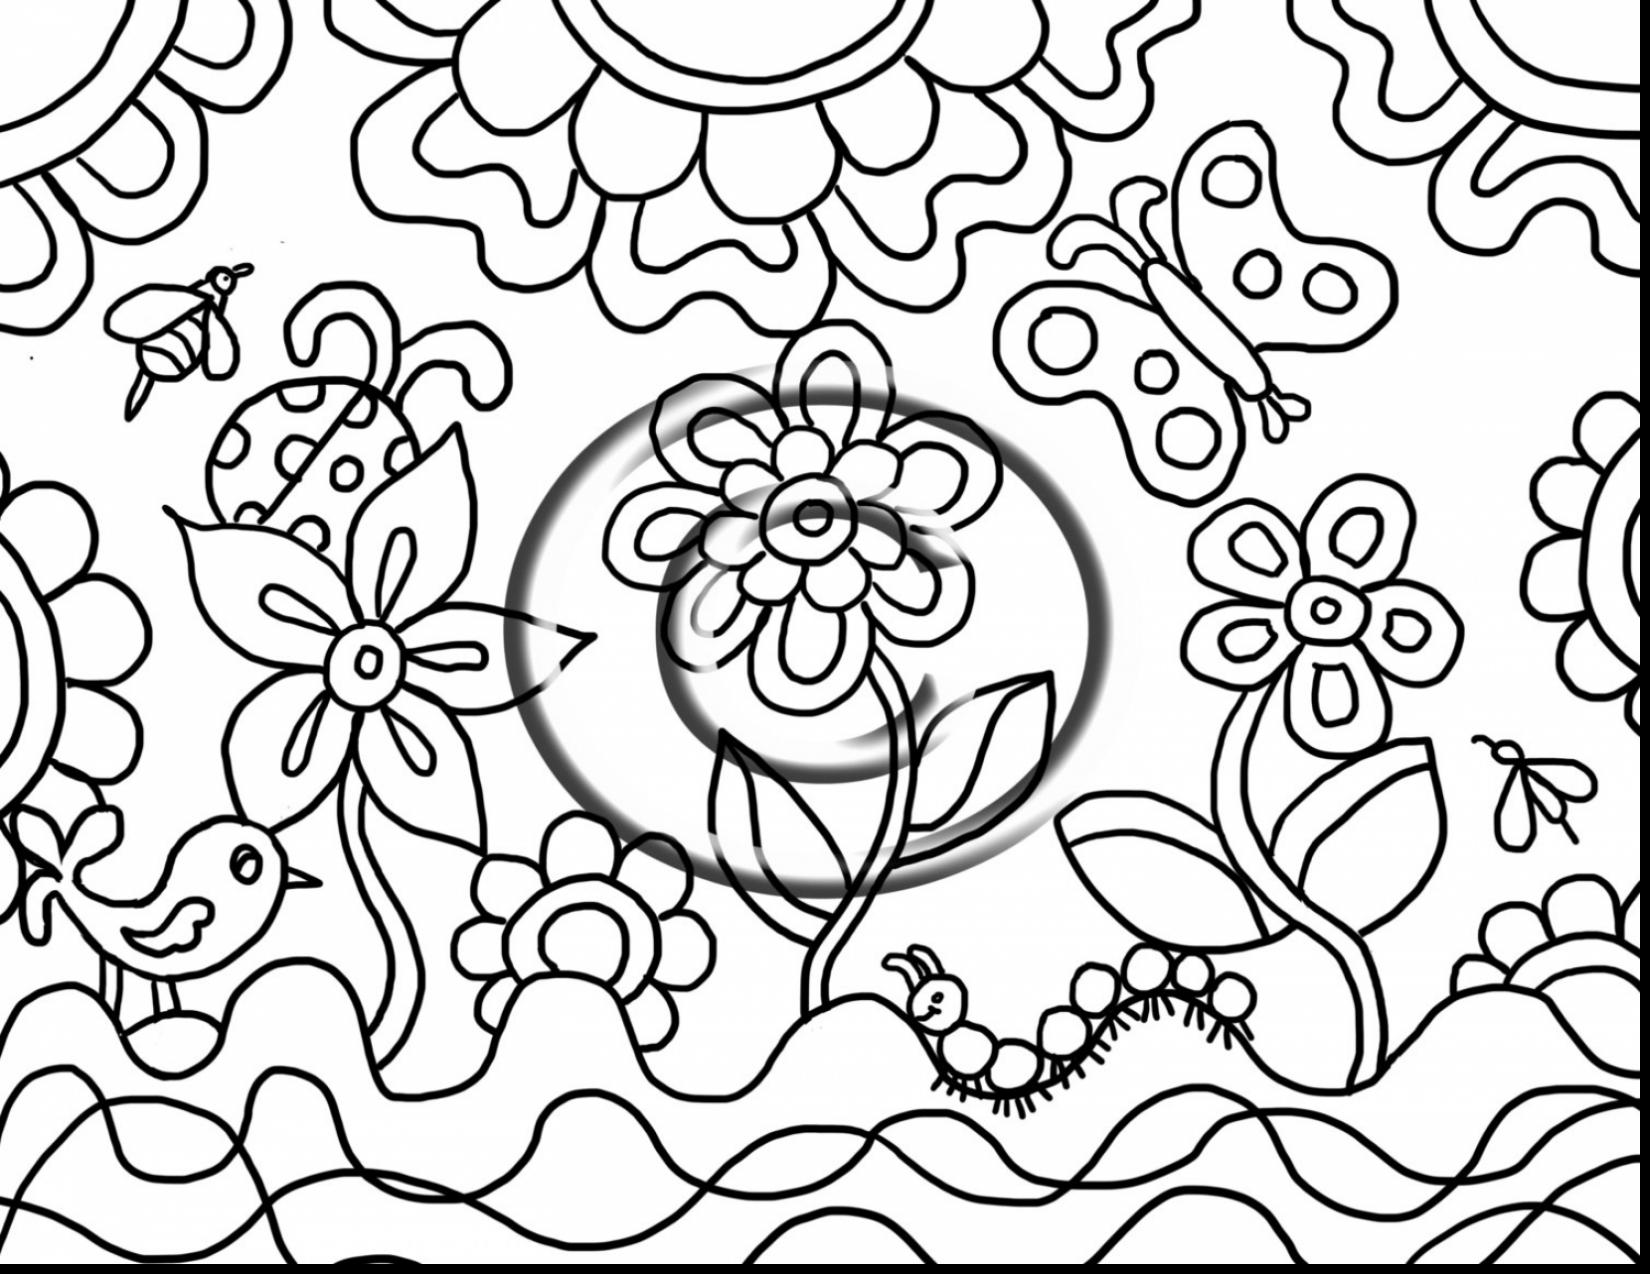 1650x1274 Magnificent Doodle Art Coloring Pages With Doodle Coloring Pages